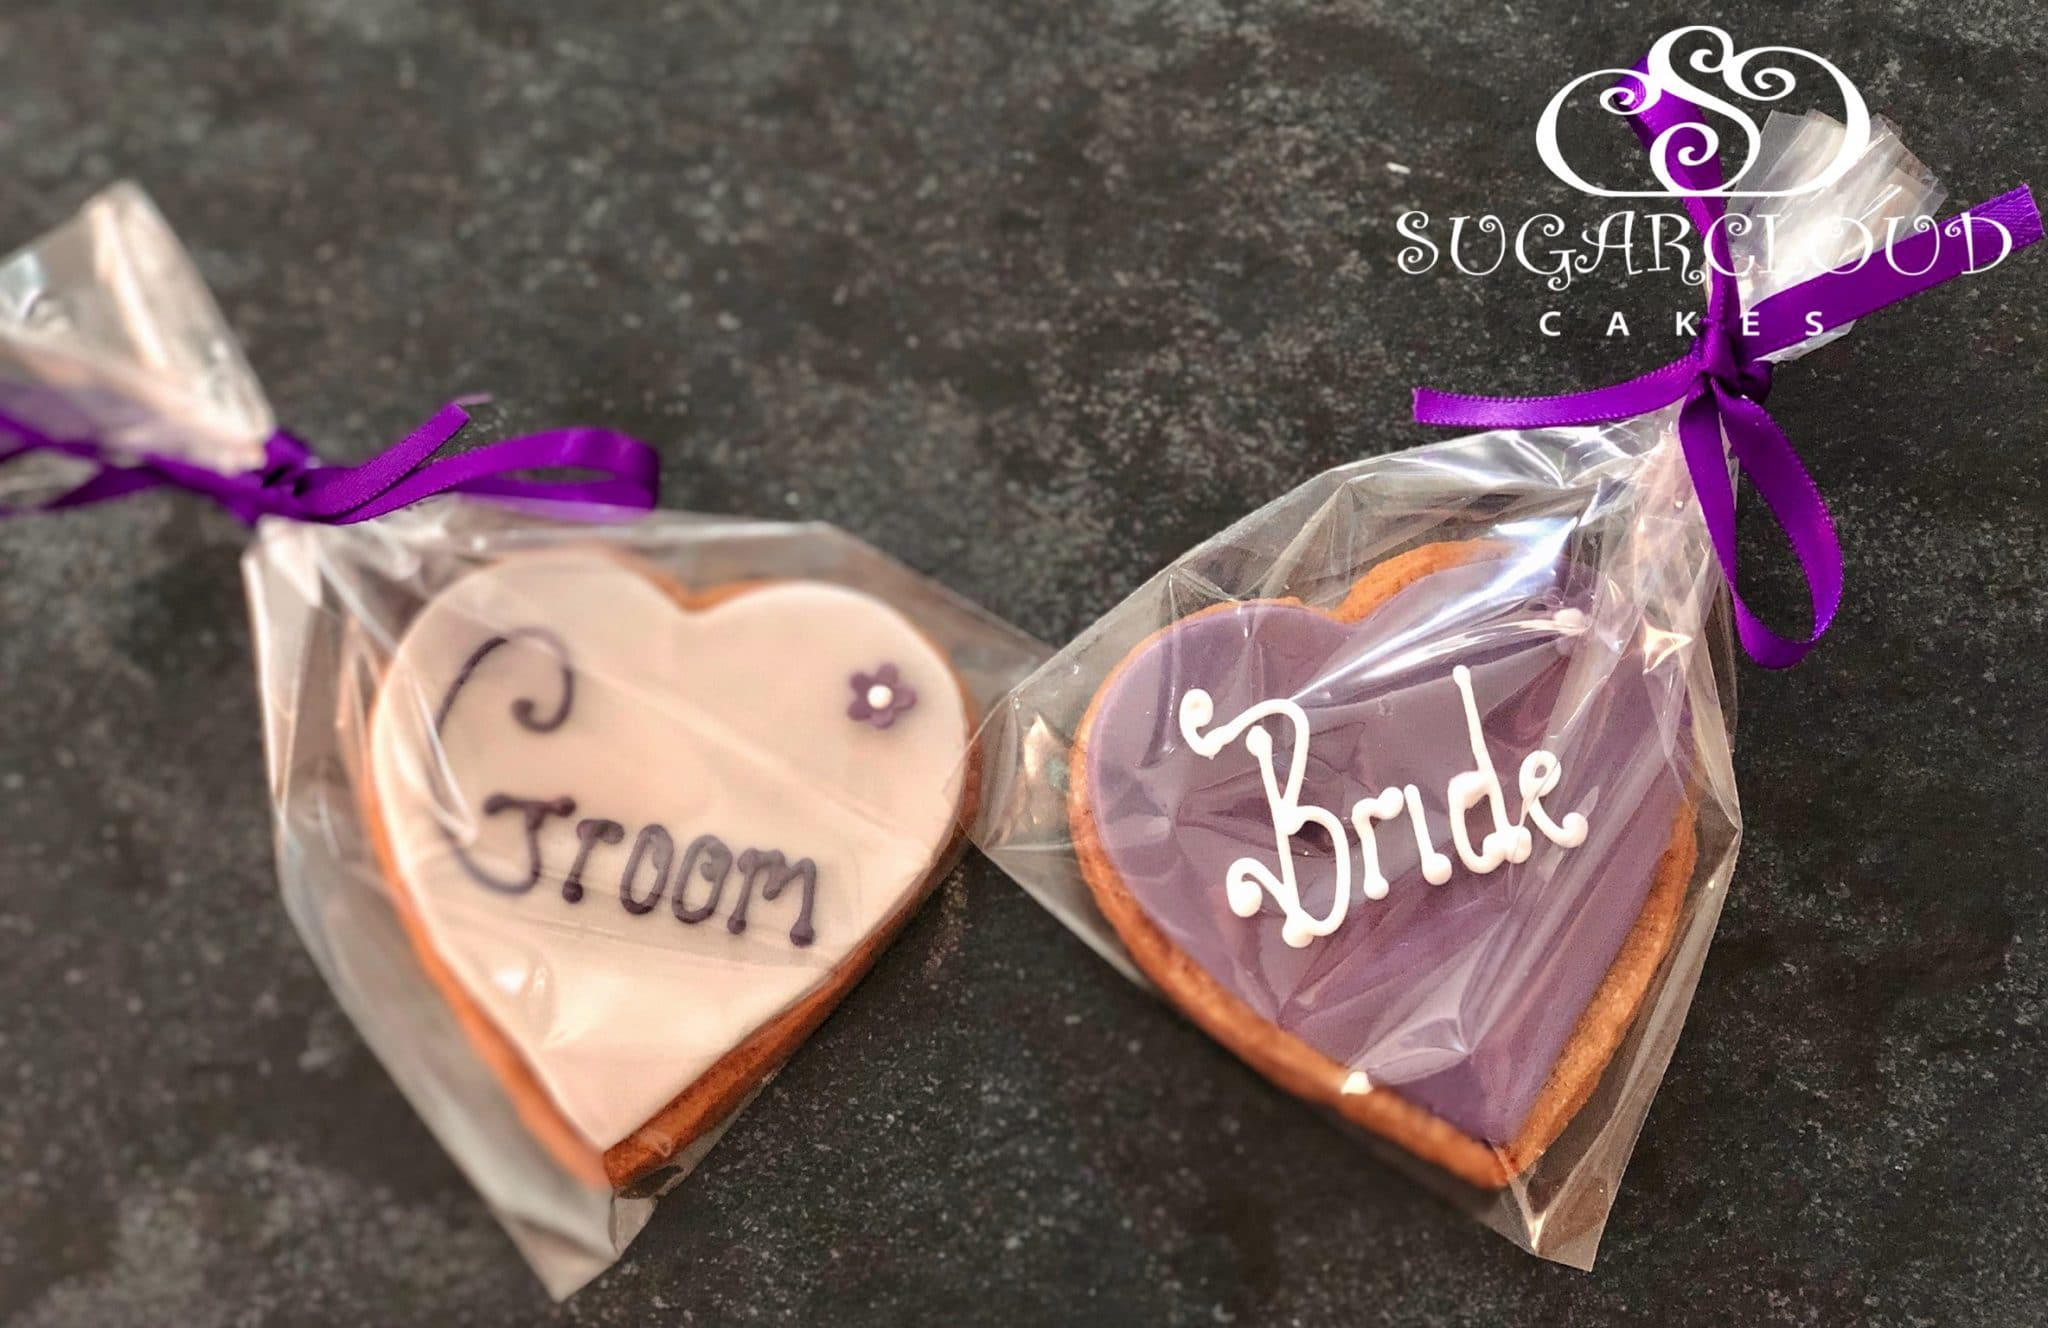 Gingerbread Wedding Favours that were also used as place cards on the tables